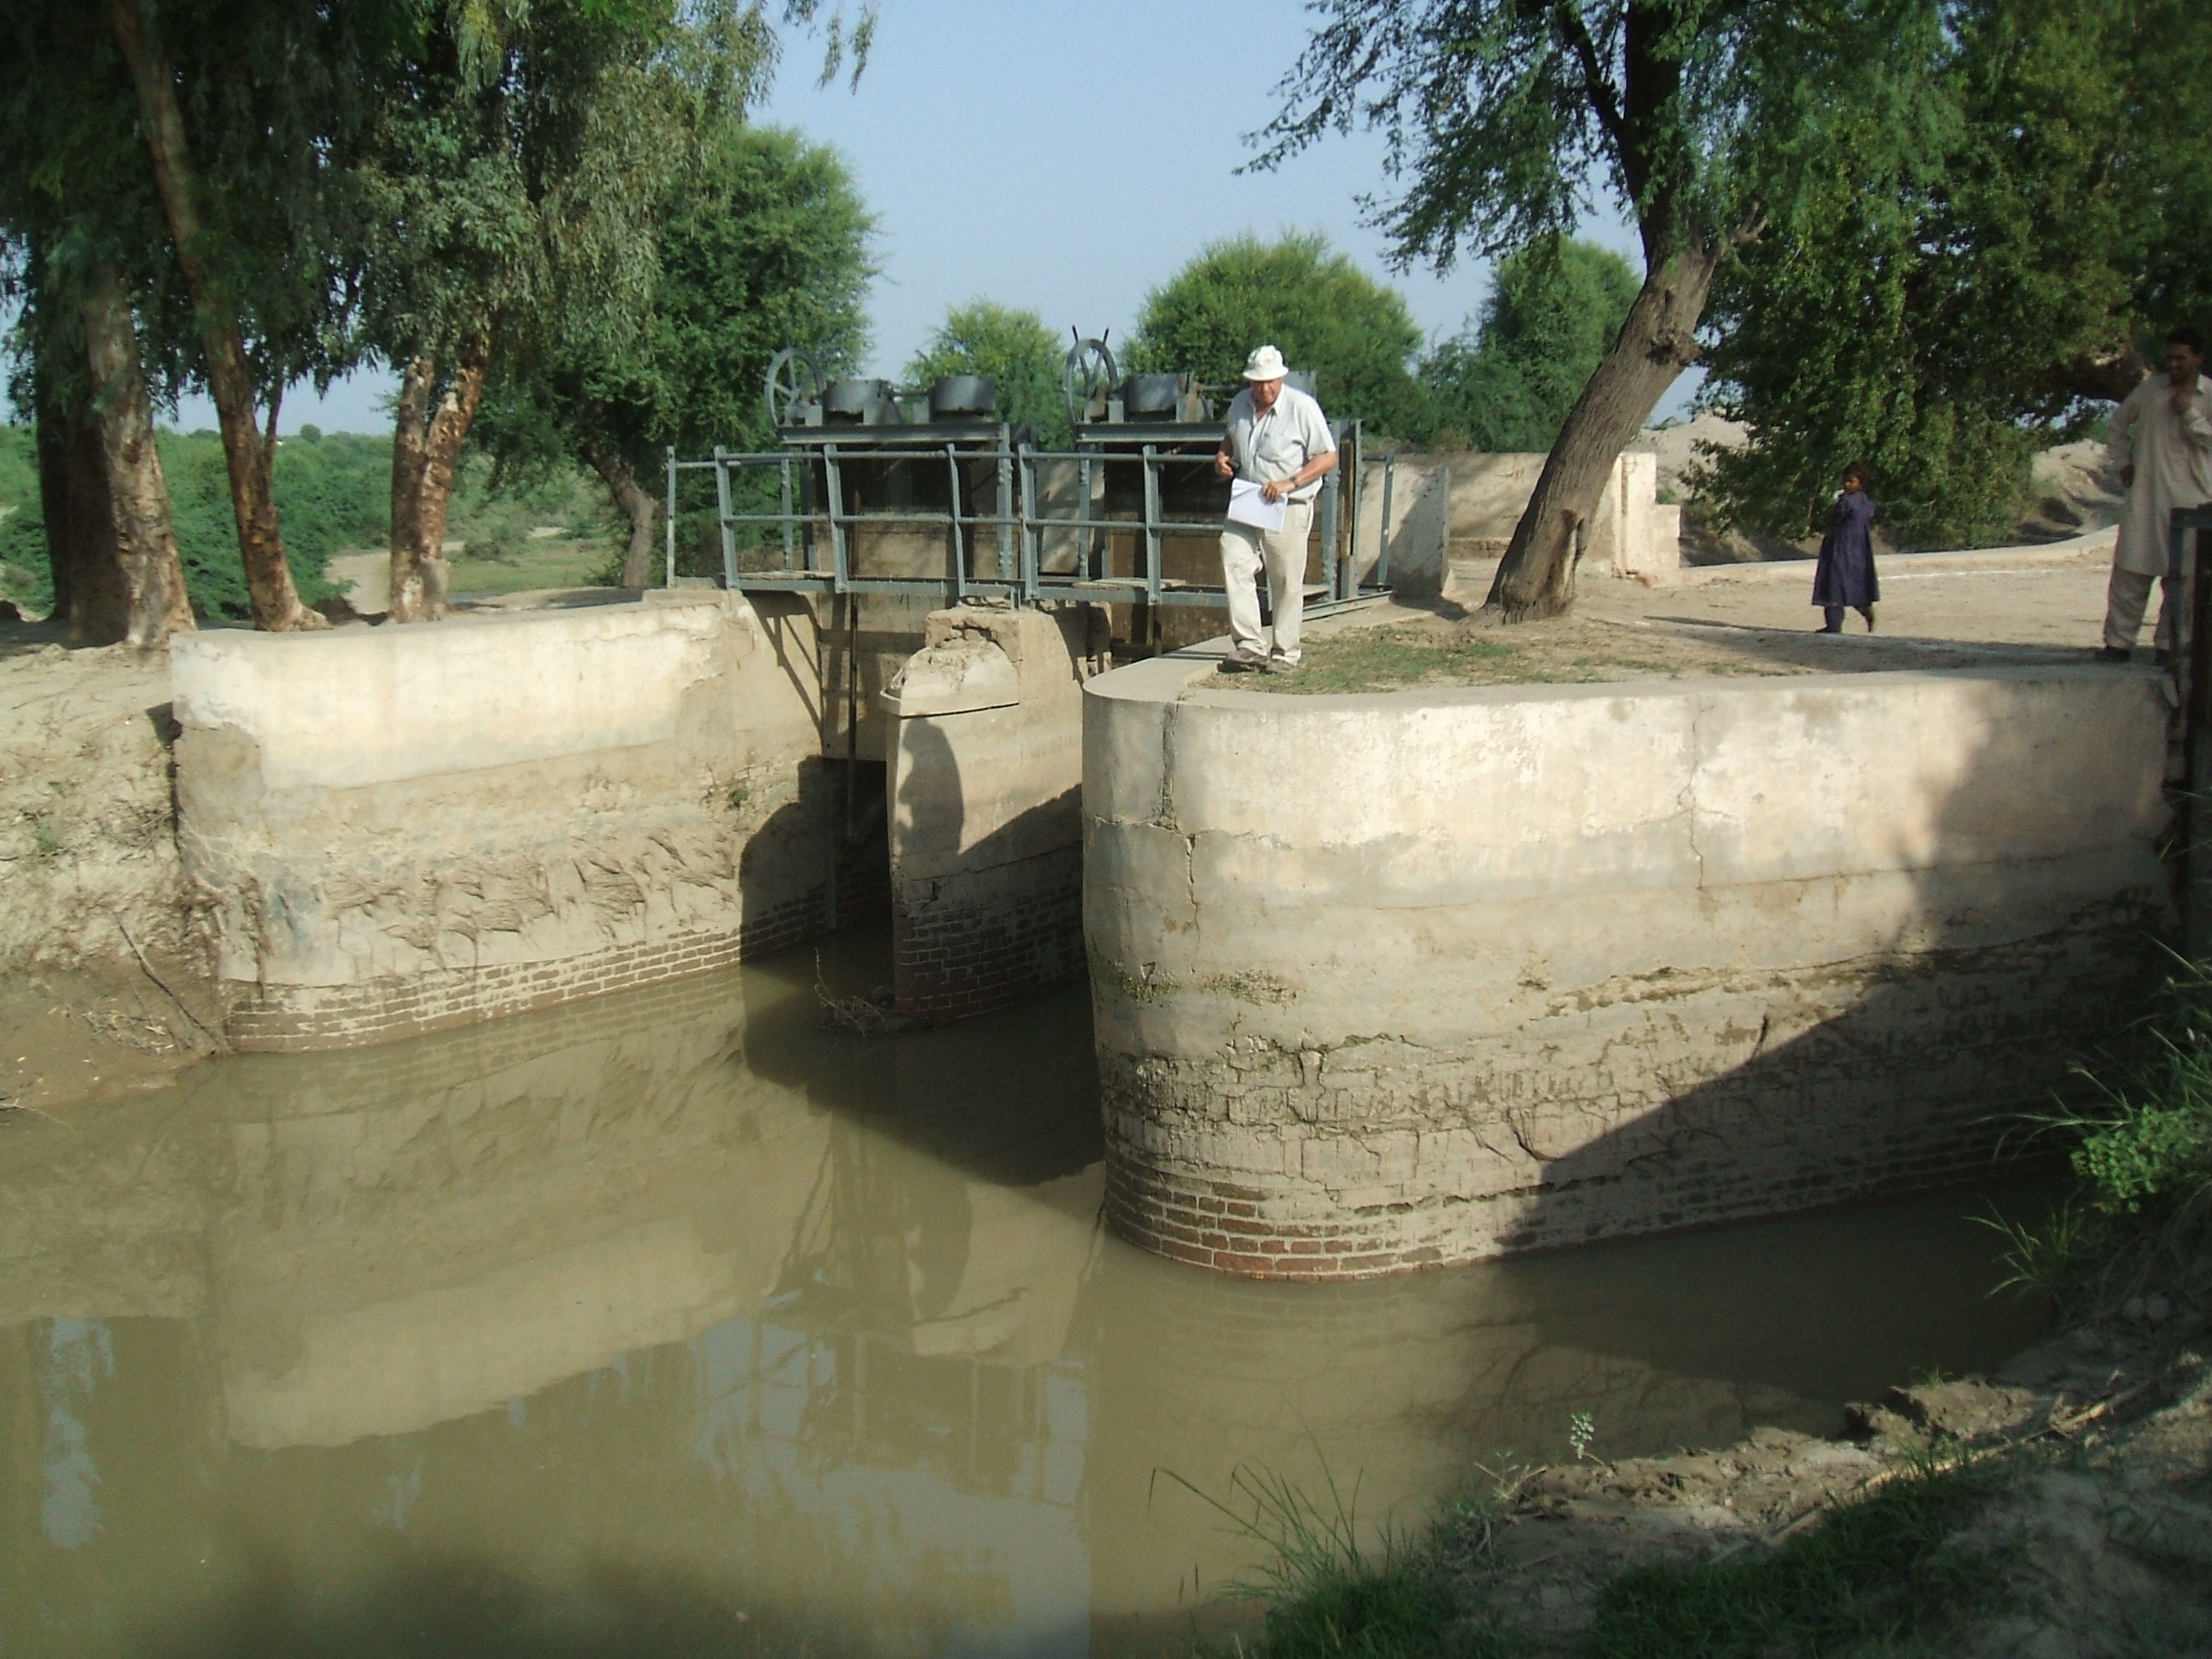 Man checking condition of canal sluice gates.